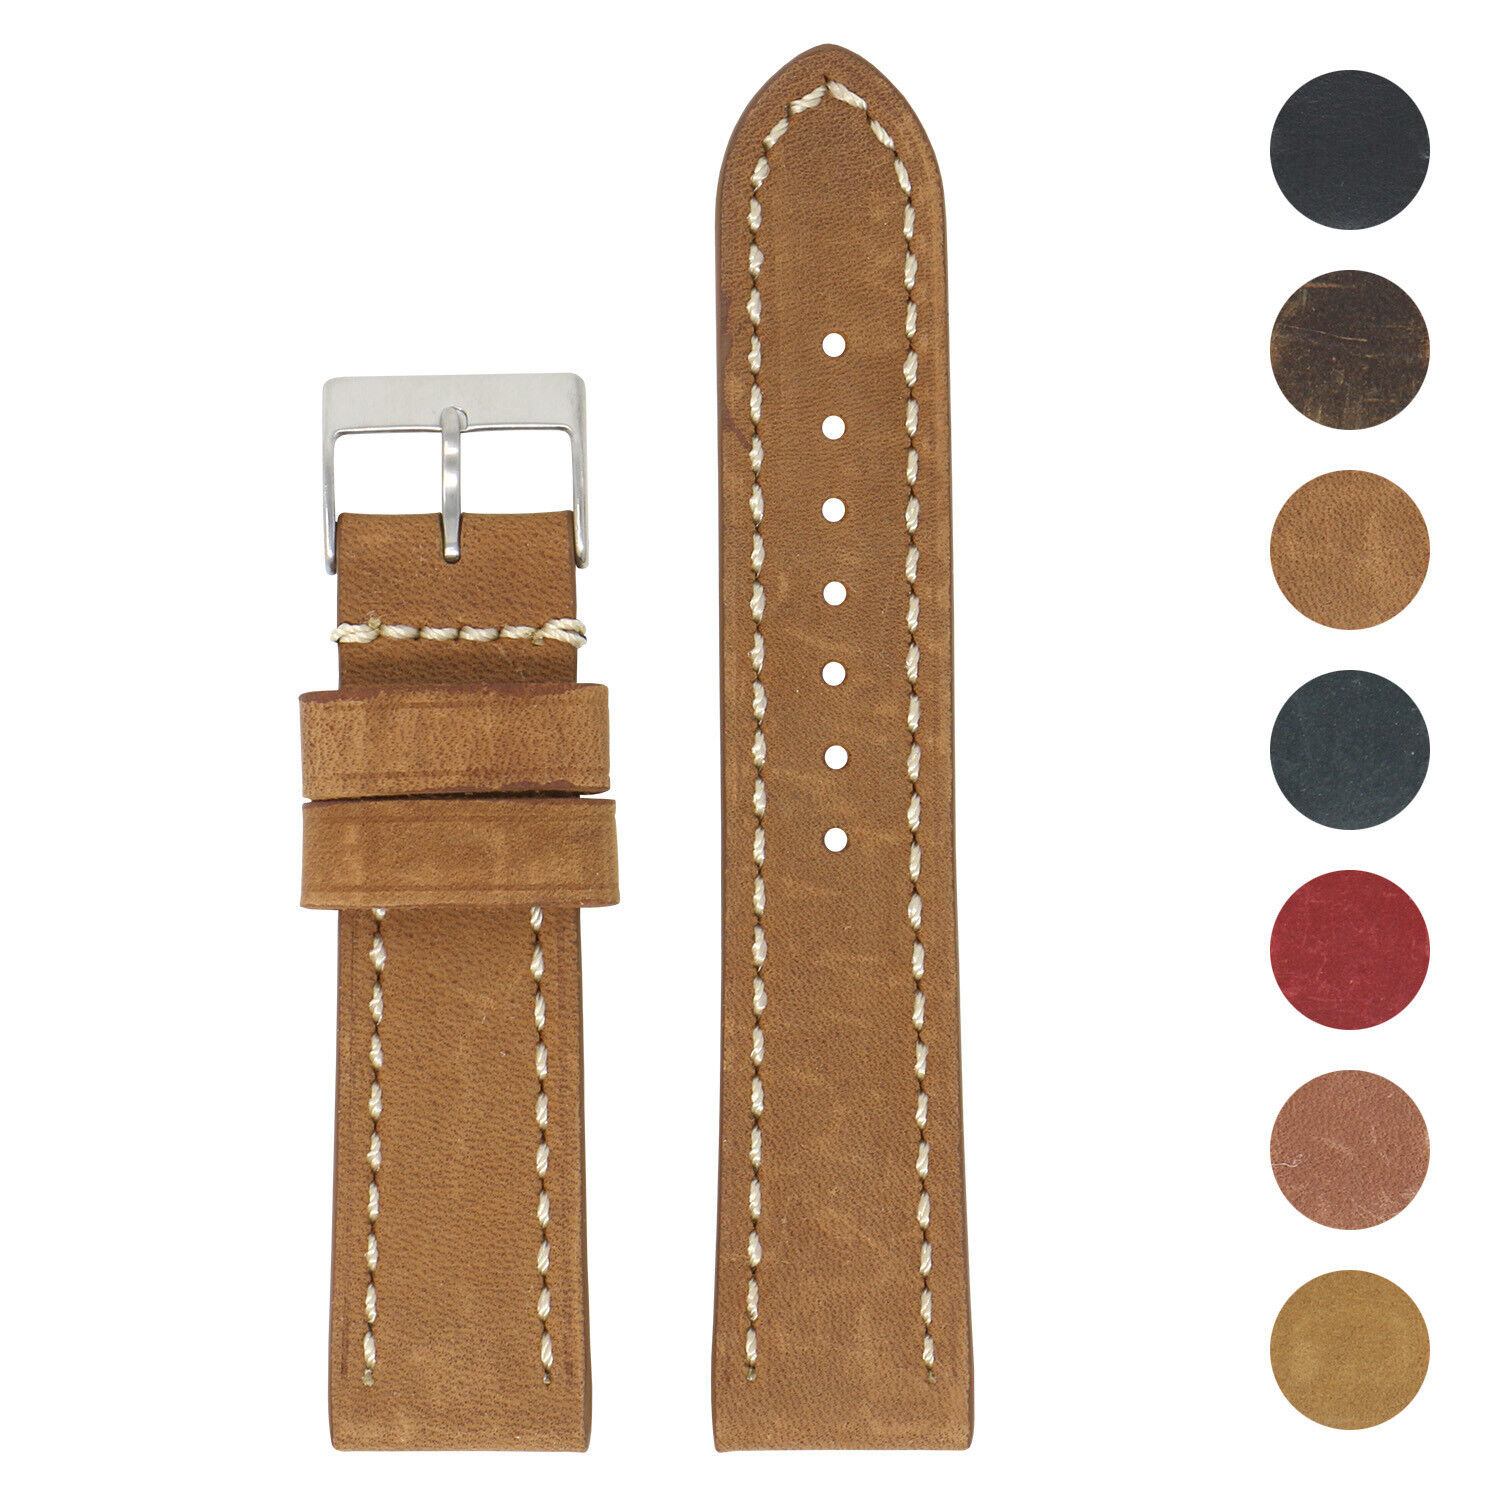 StrapsCo Vintage Leather Watch Band Strap Short Standard Extra Long